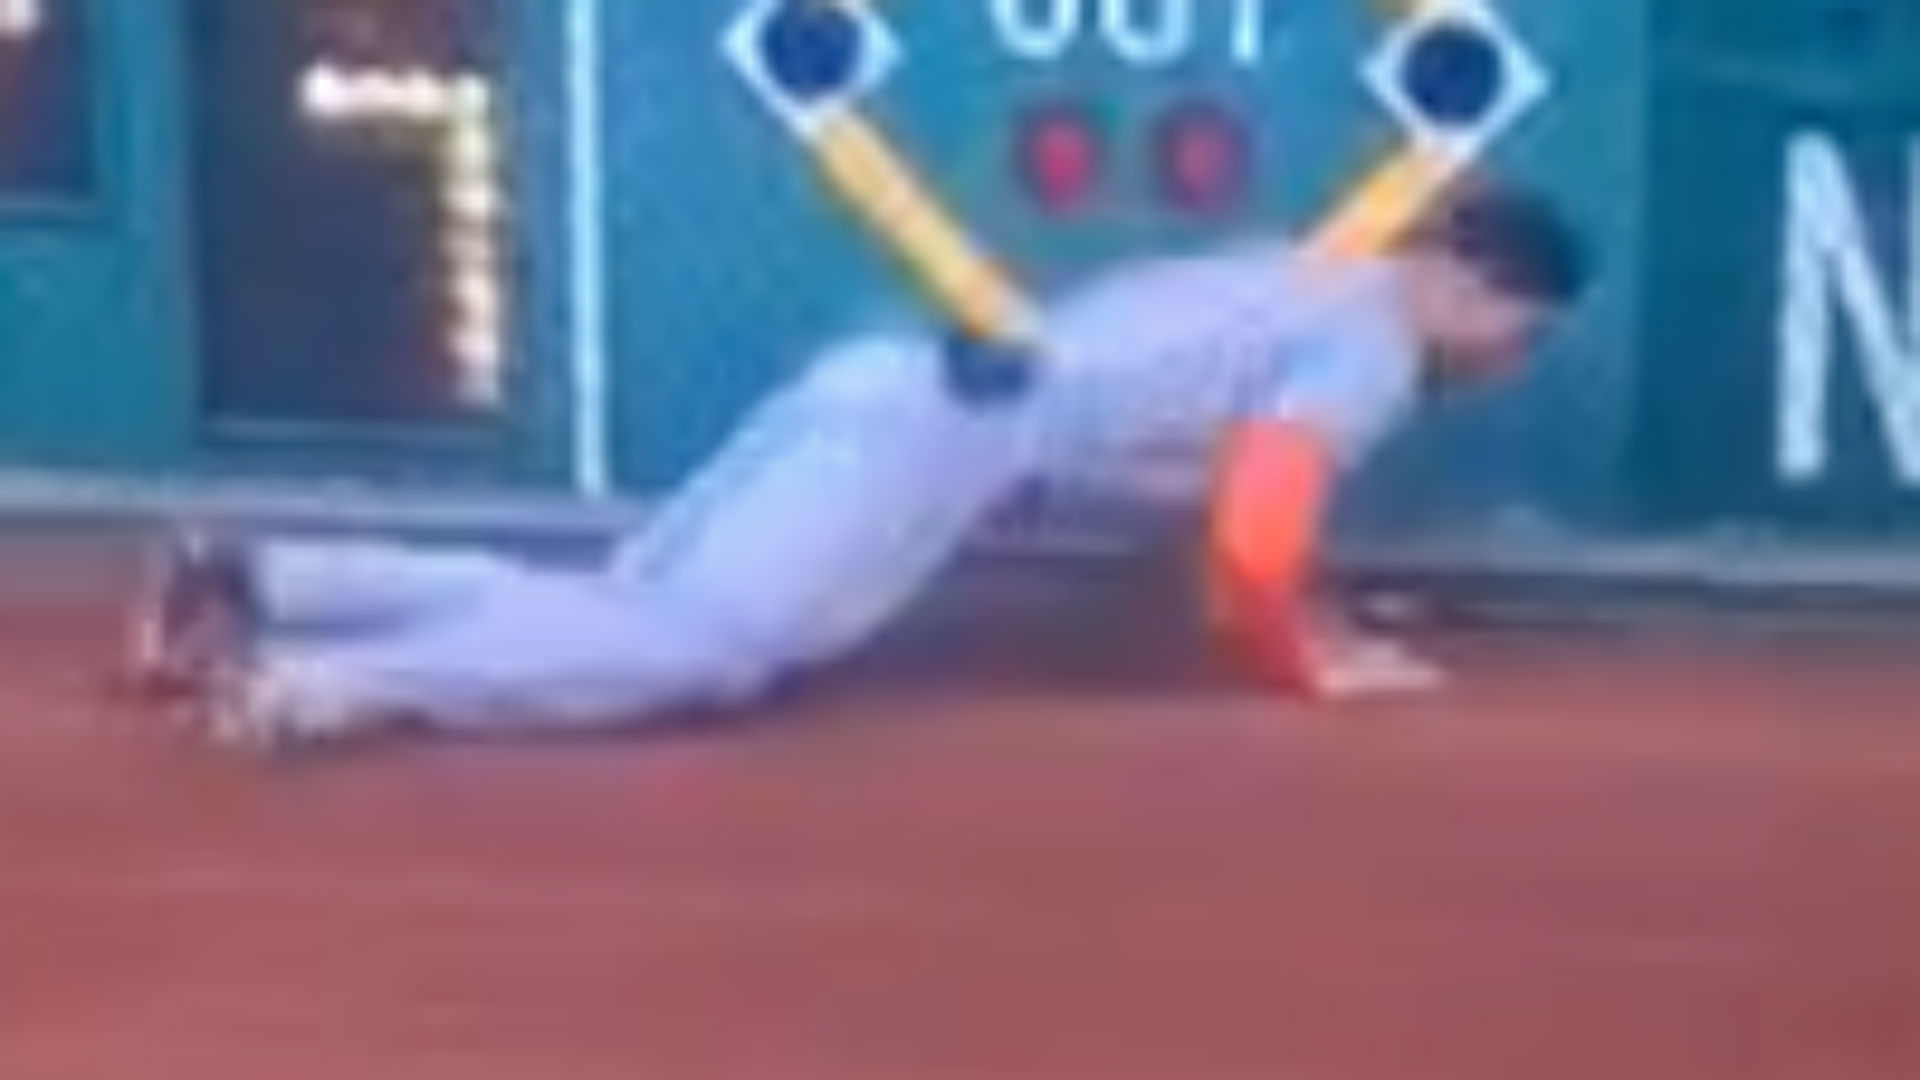 Giancarlo Stanton makes unbelievable catch, blasts homer in next inning